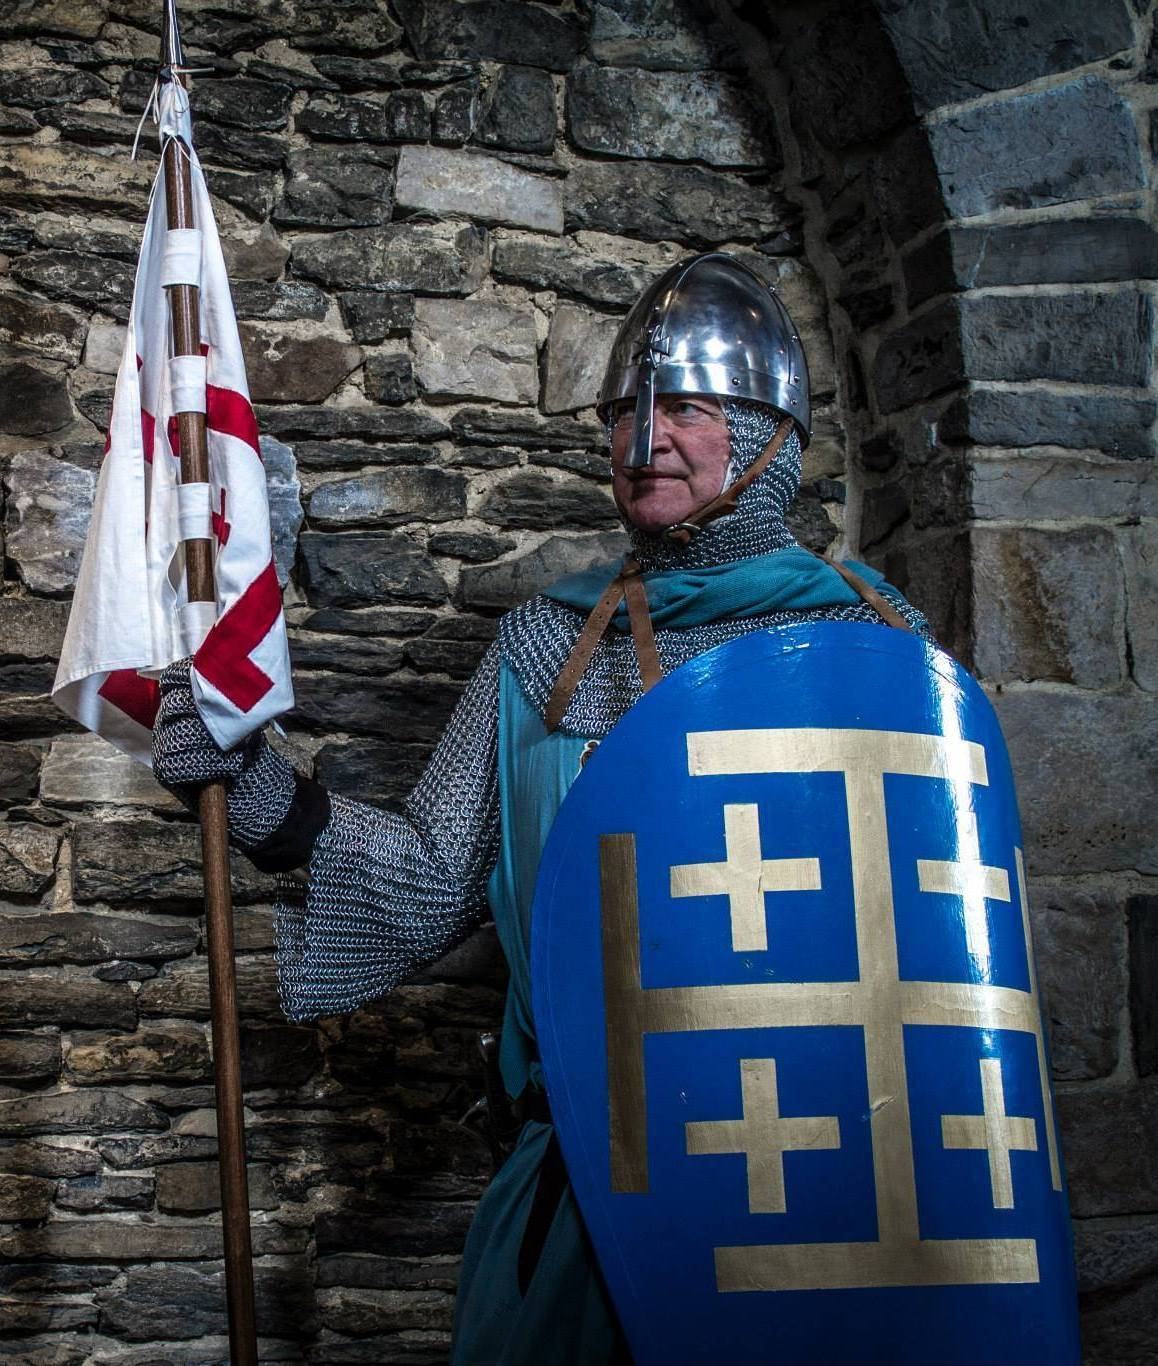 Medieval knight of the Holy land